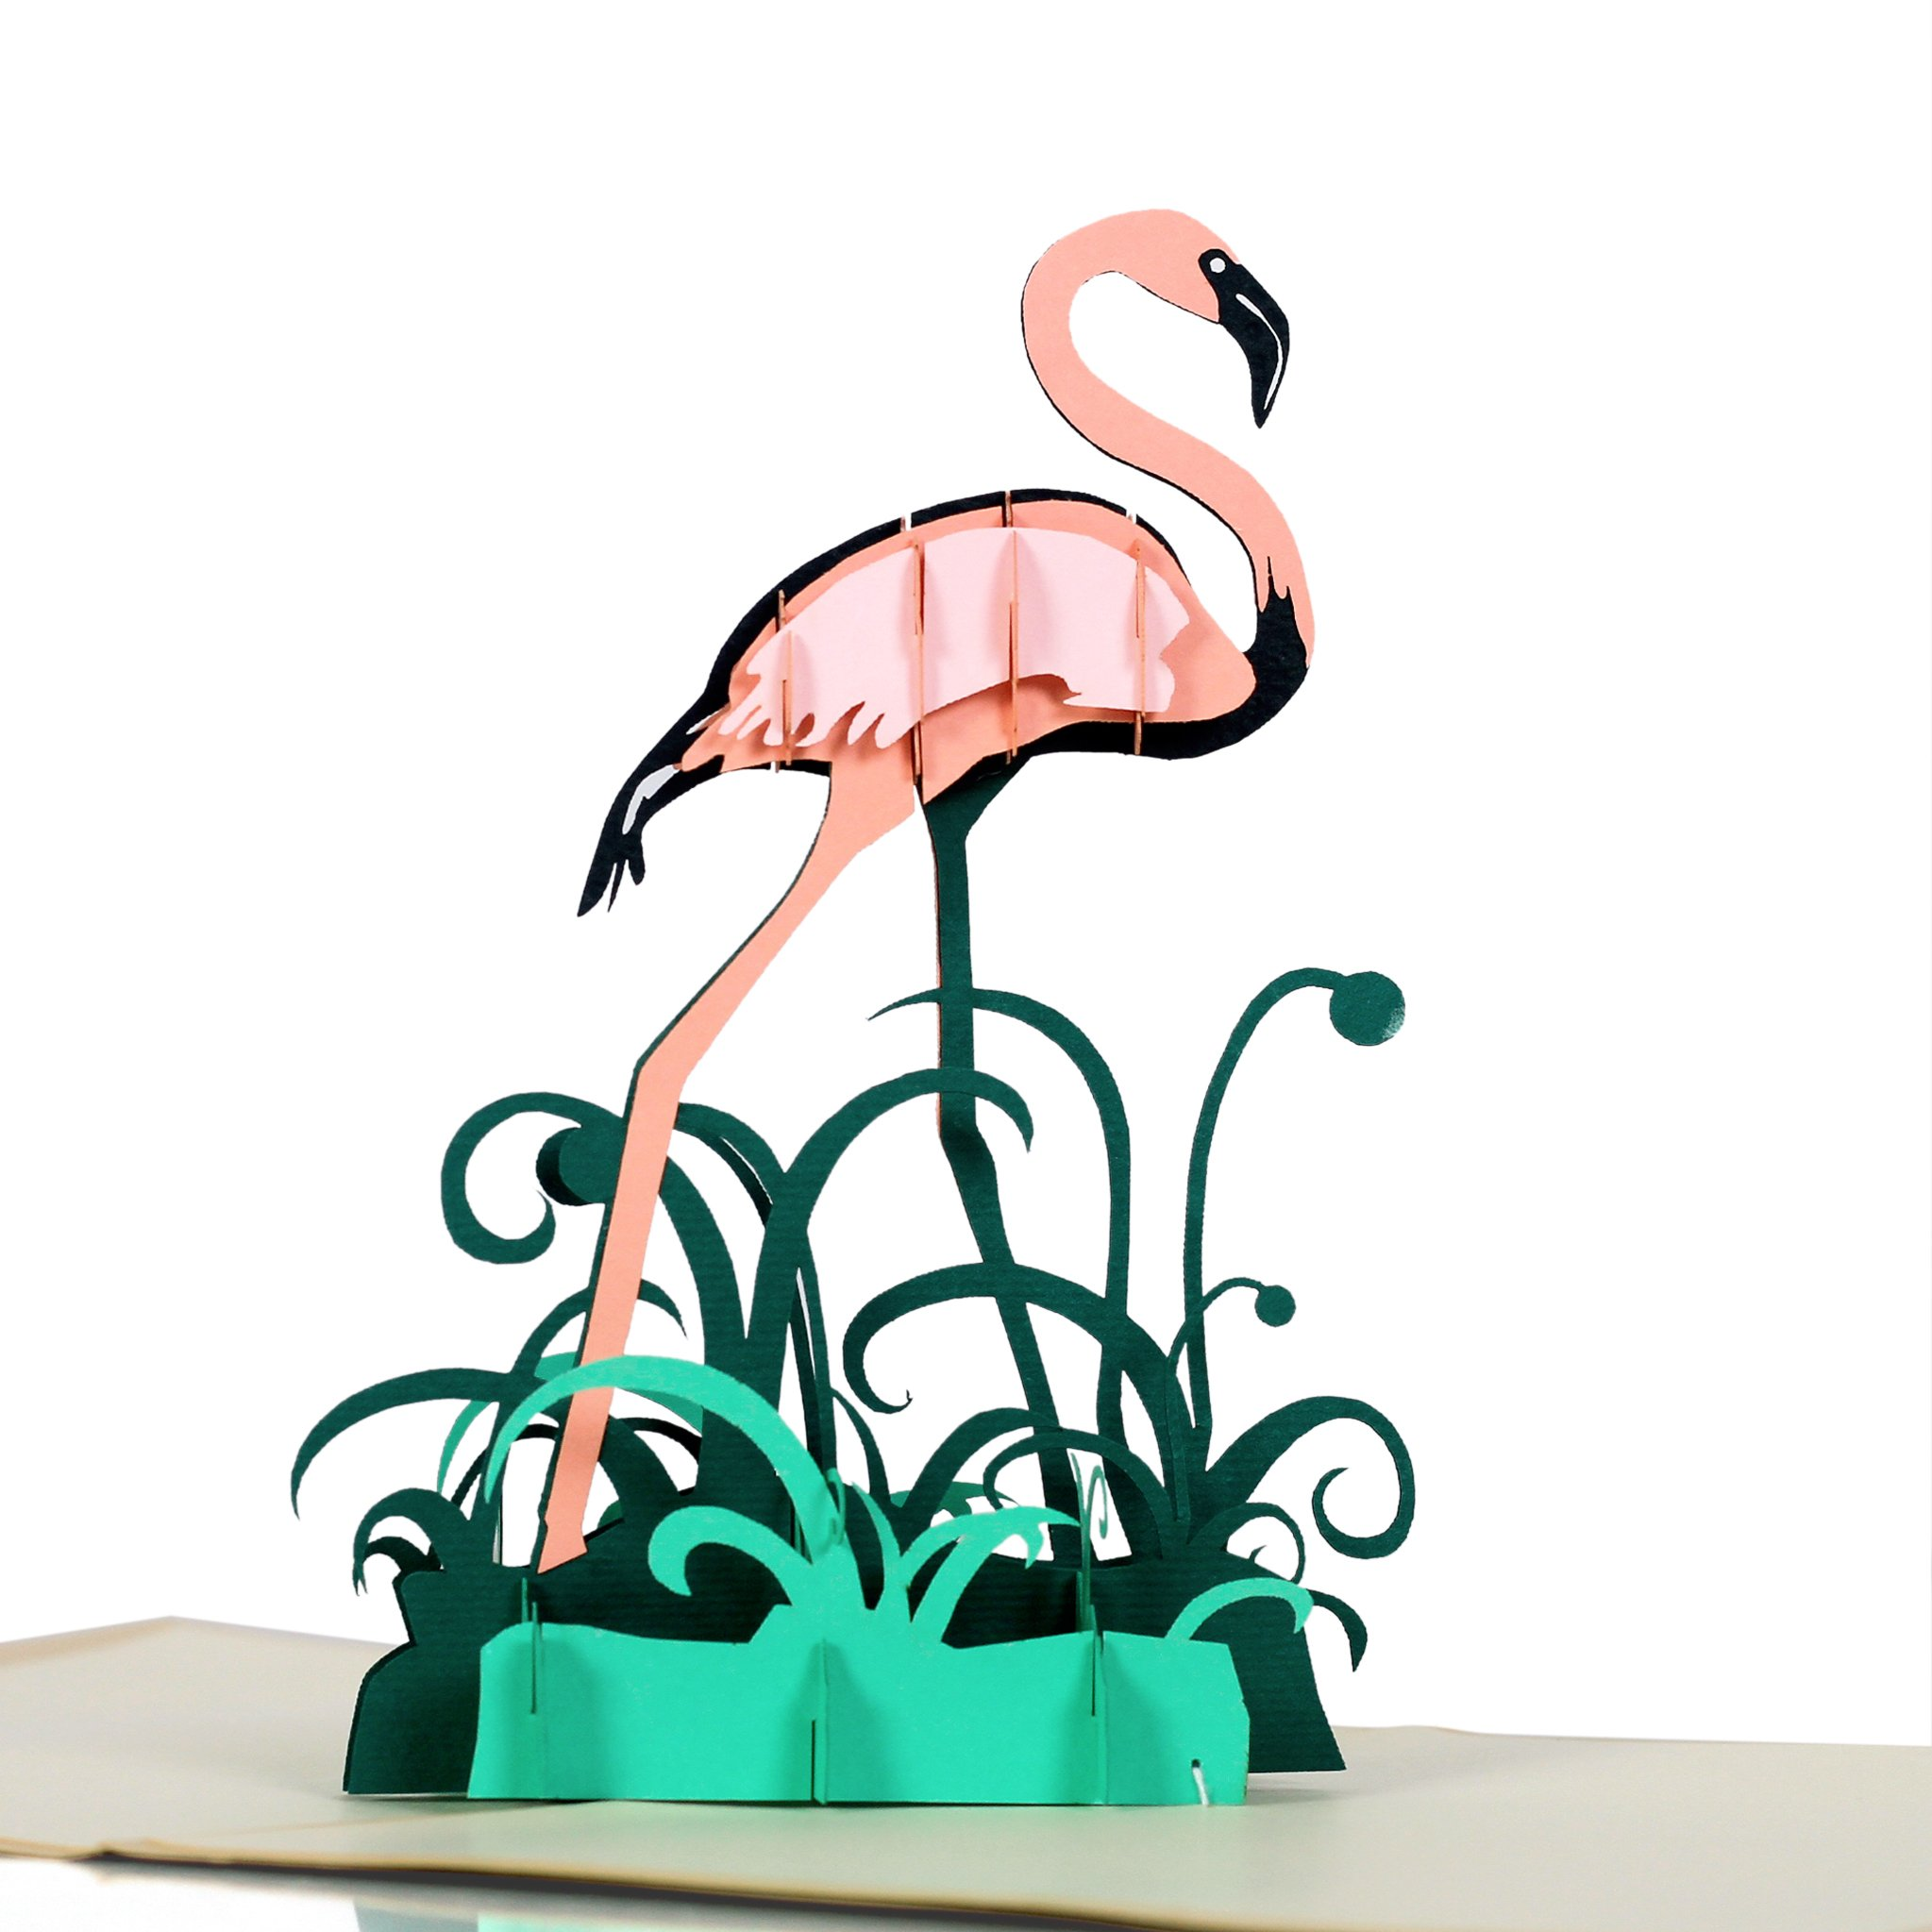 CUTEPOPUP Flamingo Bird 3D Pop up Greeting Cards –– Lovely Handmade Gifts for your friends – Ideal for Valentile Day, Birthdays, Mother's Day, Farther's Day, or any Occasion